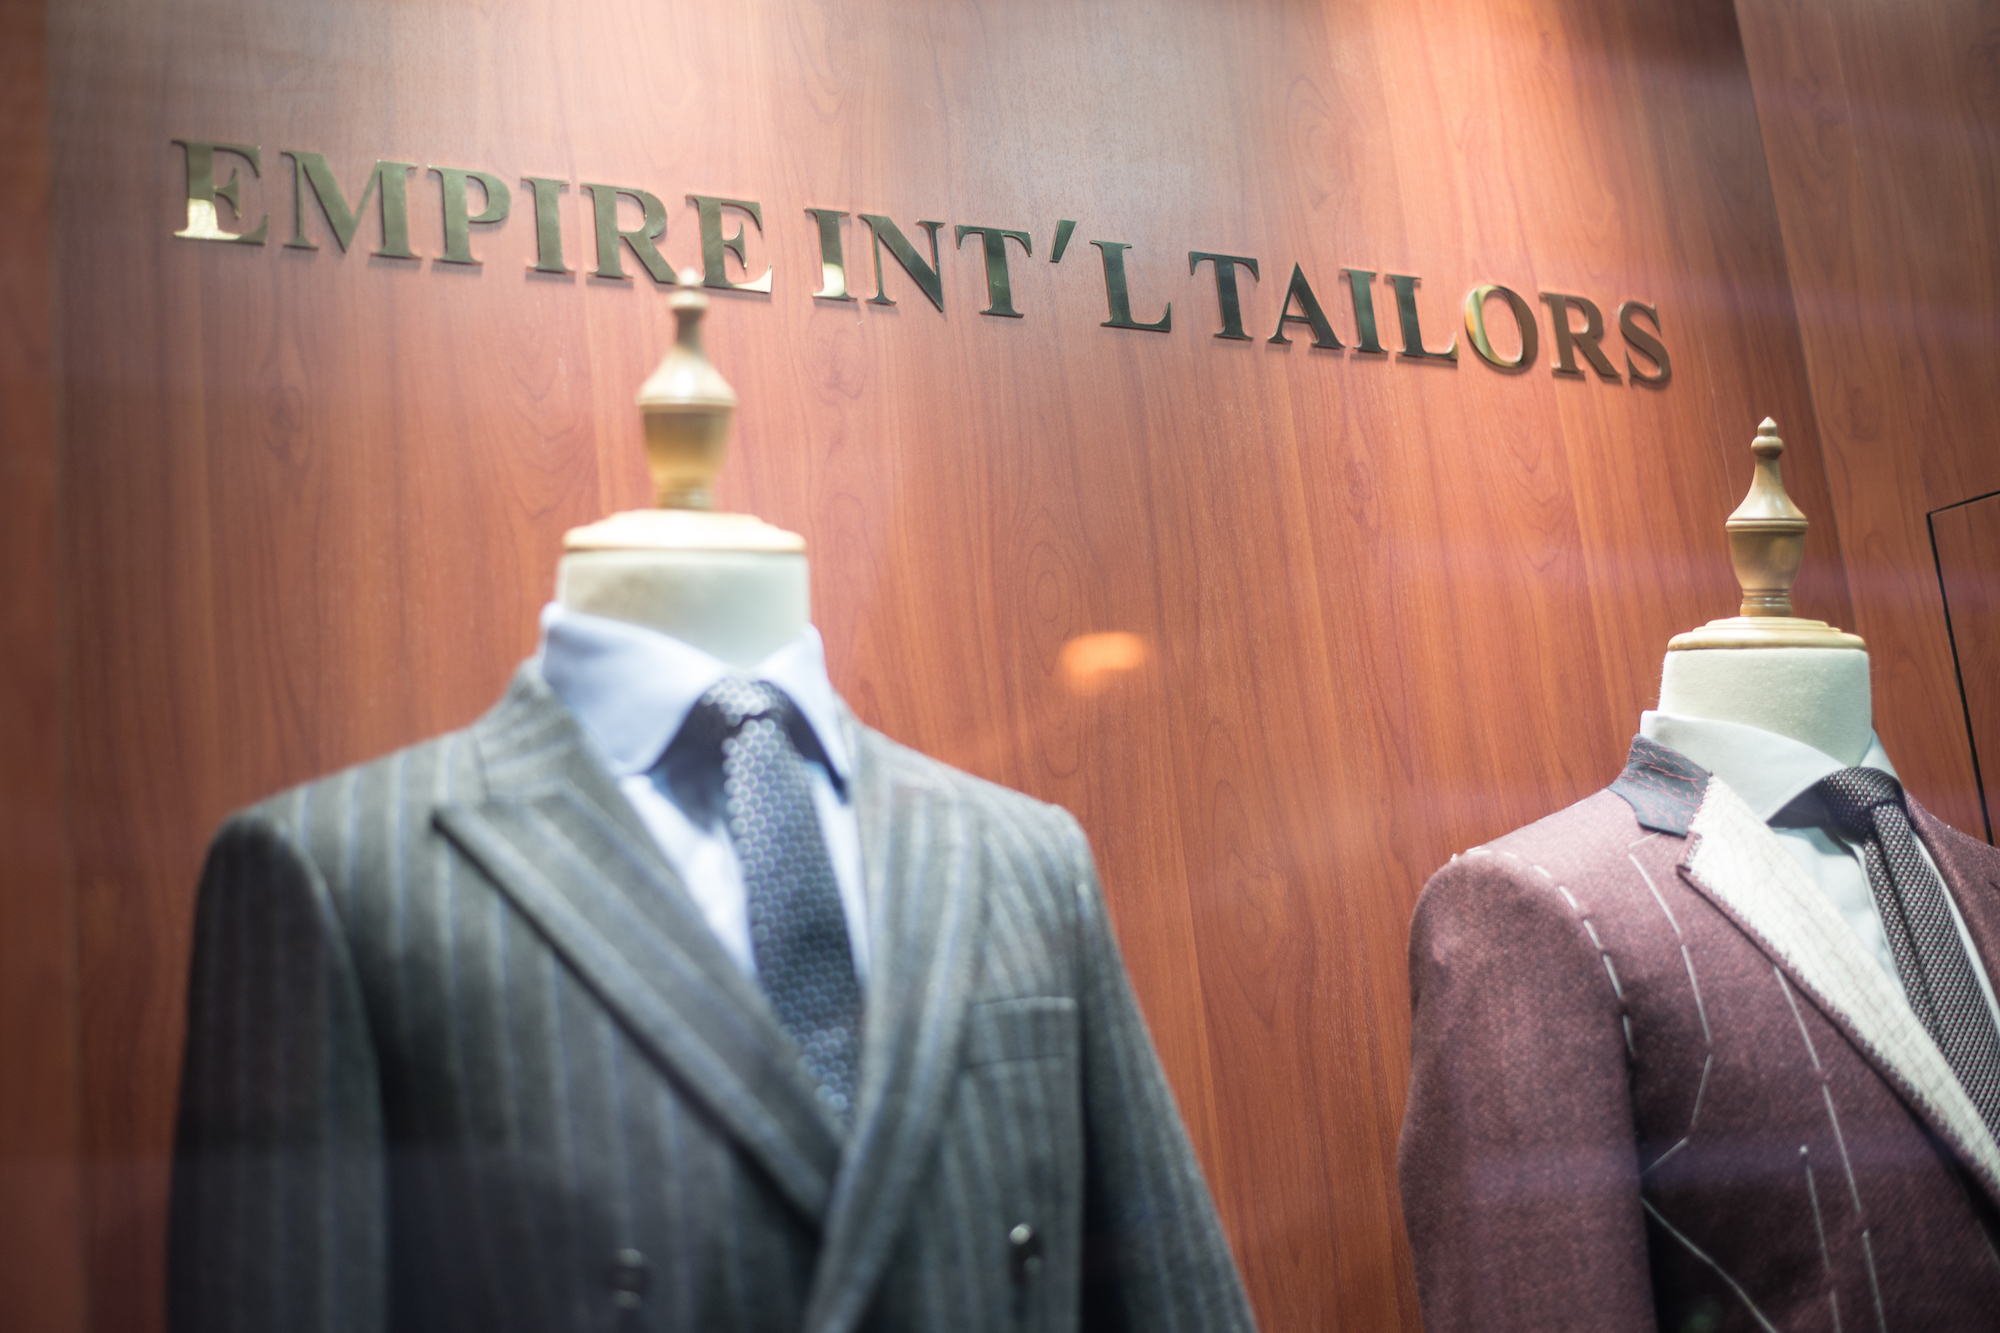 Empire Tailors